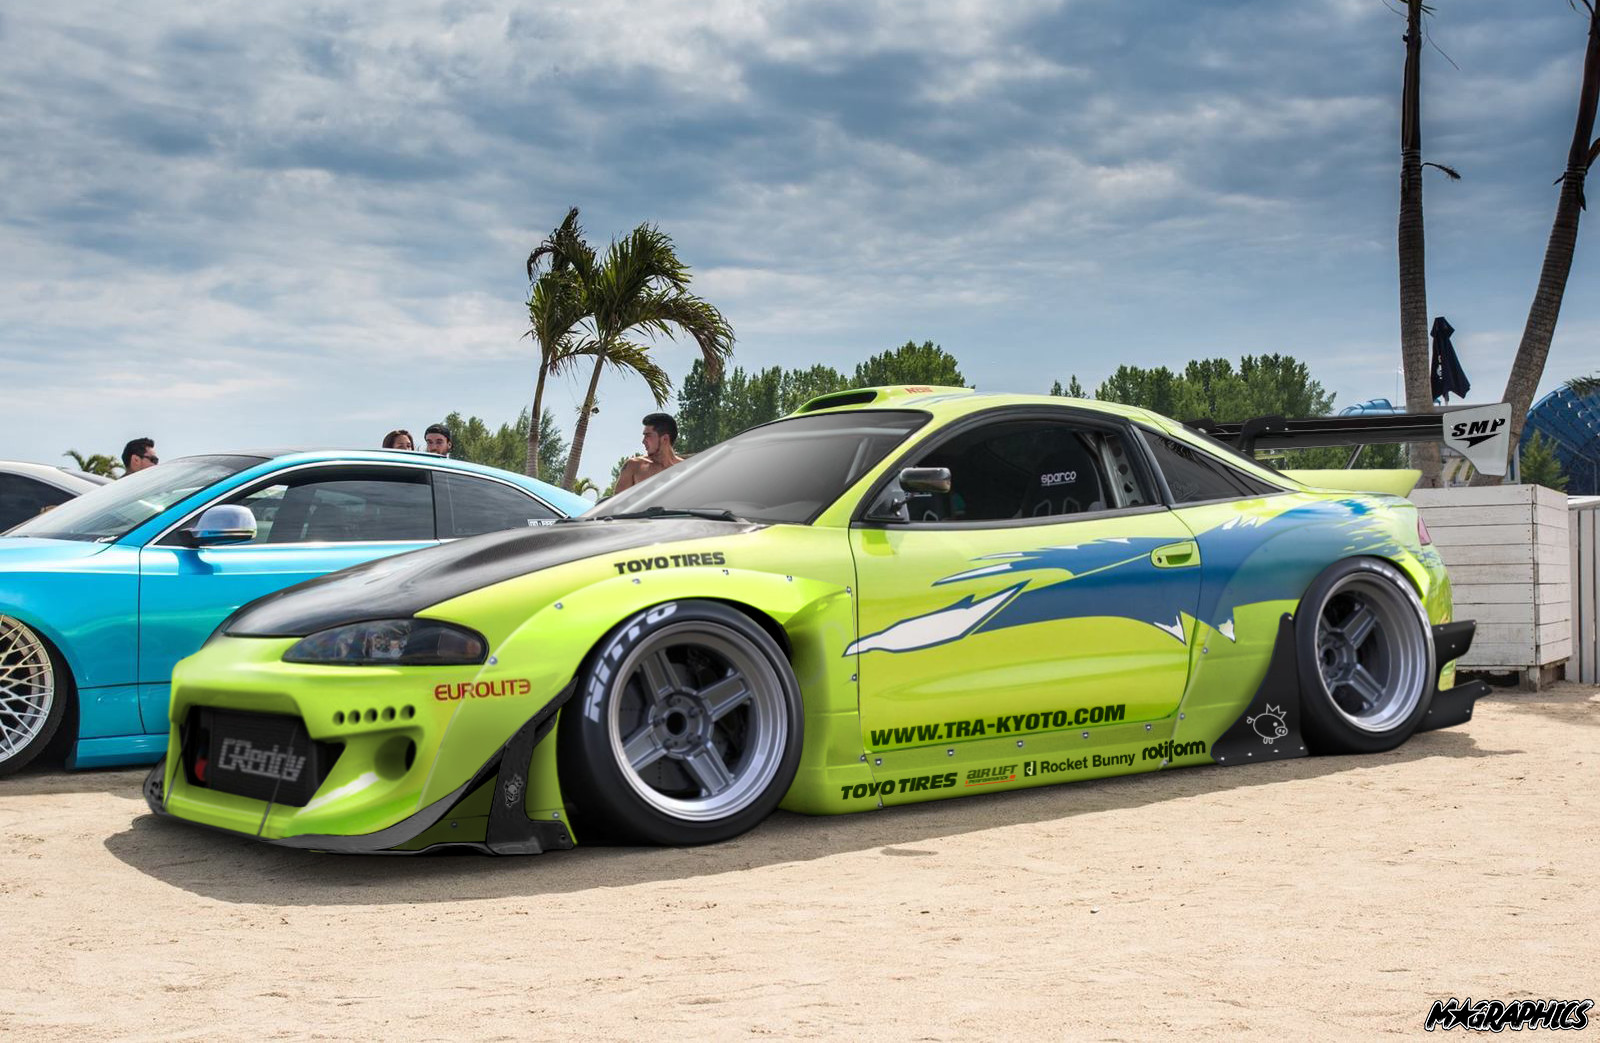 artstation - fast and furious mitsubishi eclipse rocket bunny